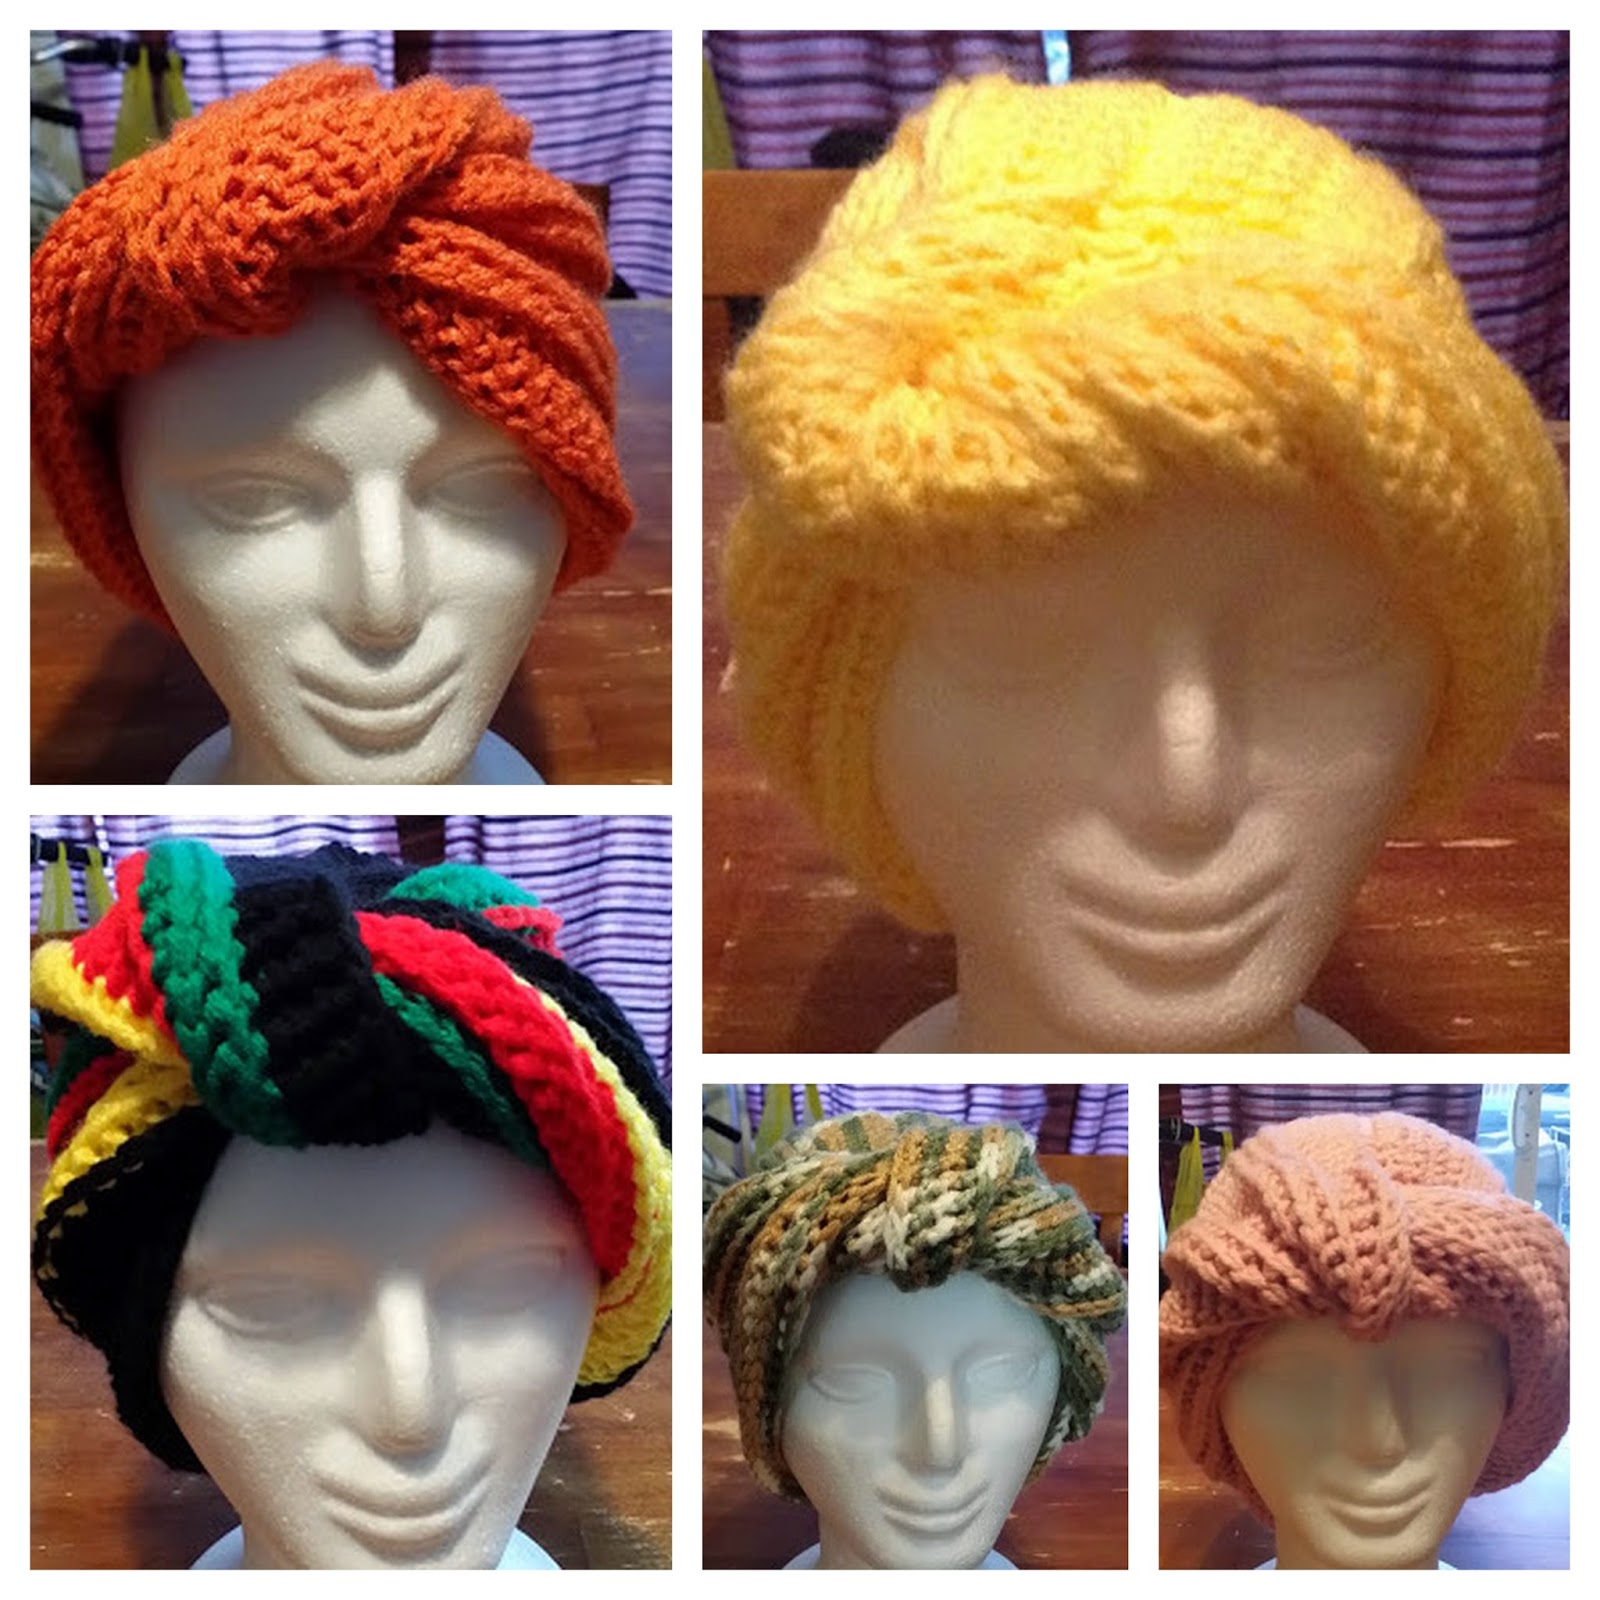 More of Angie Saunders' Crochet Wrap Twist Turbans